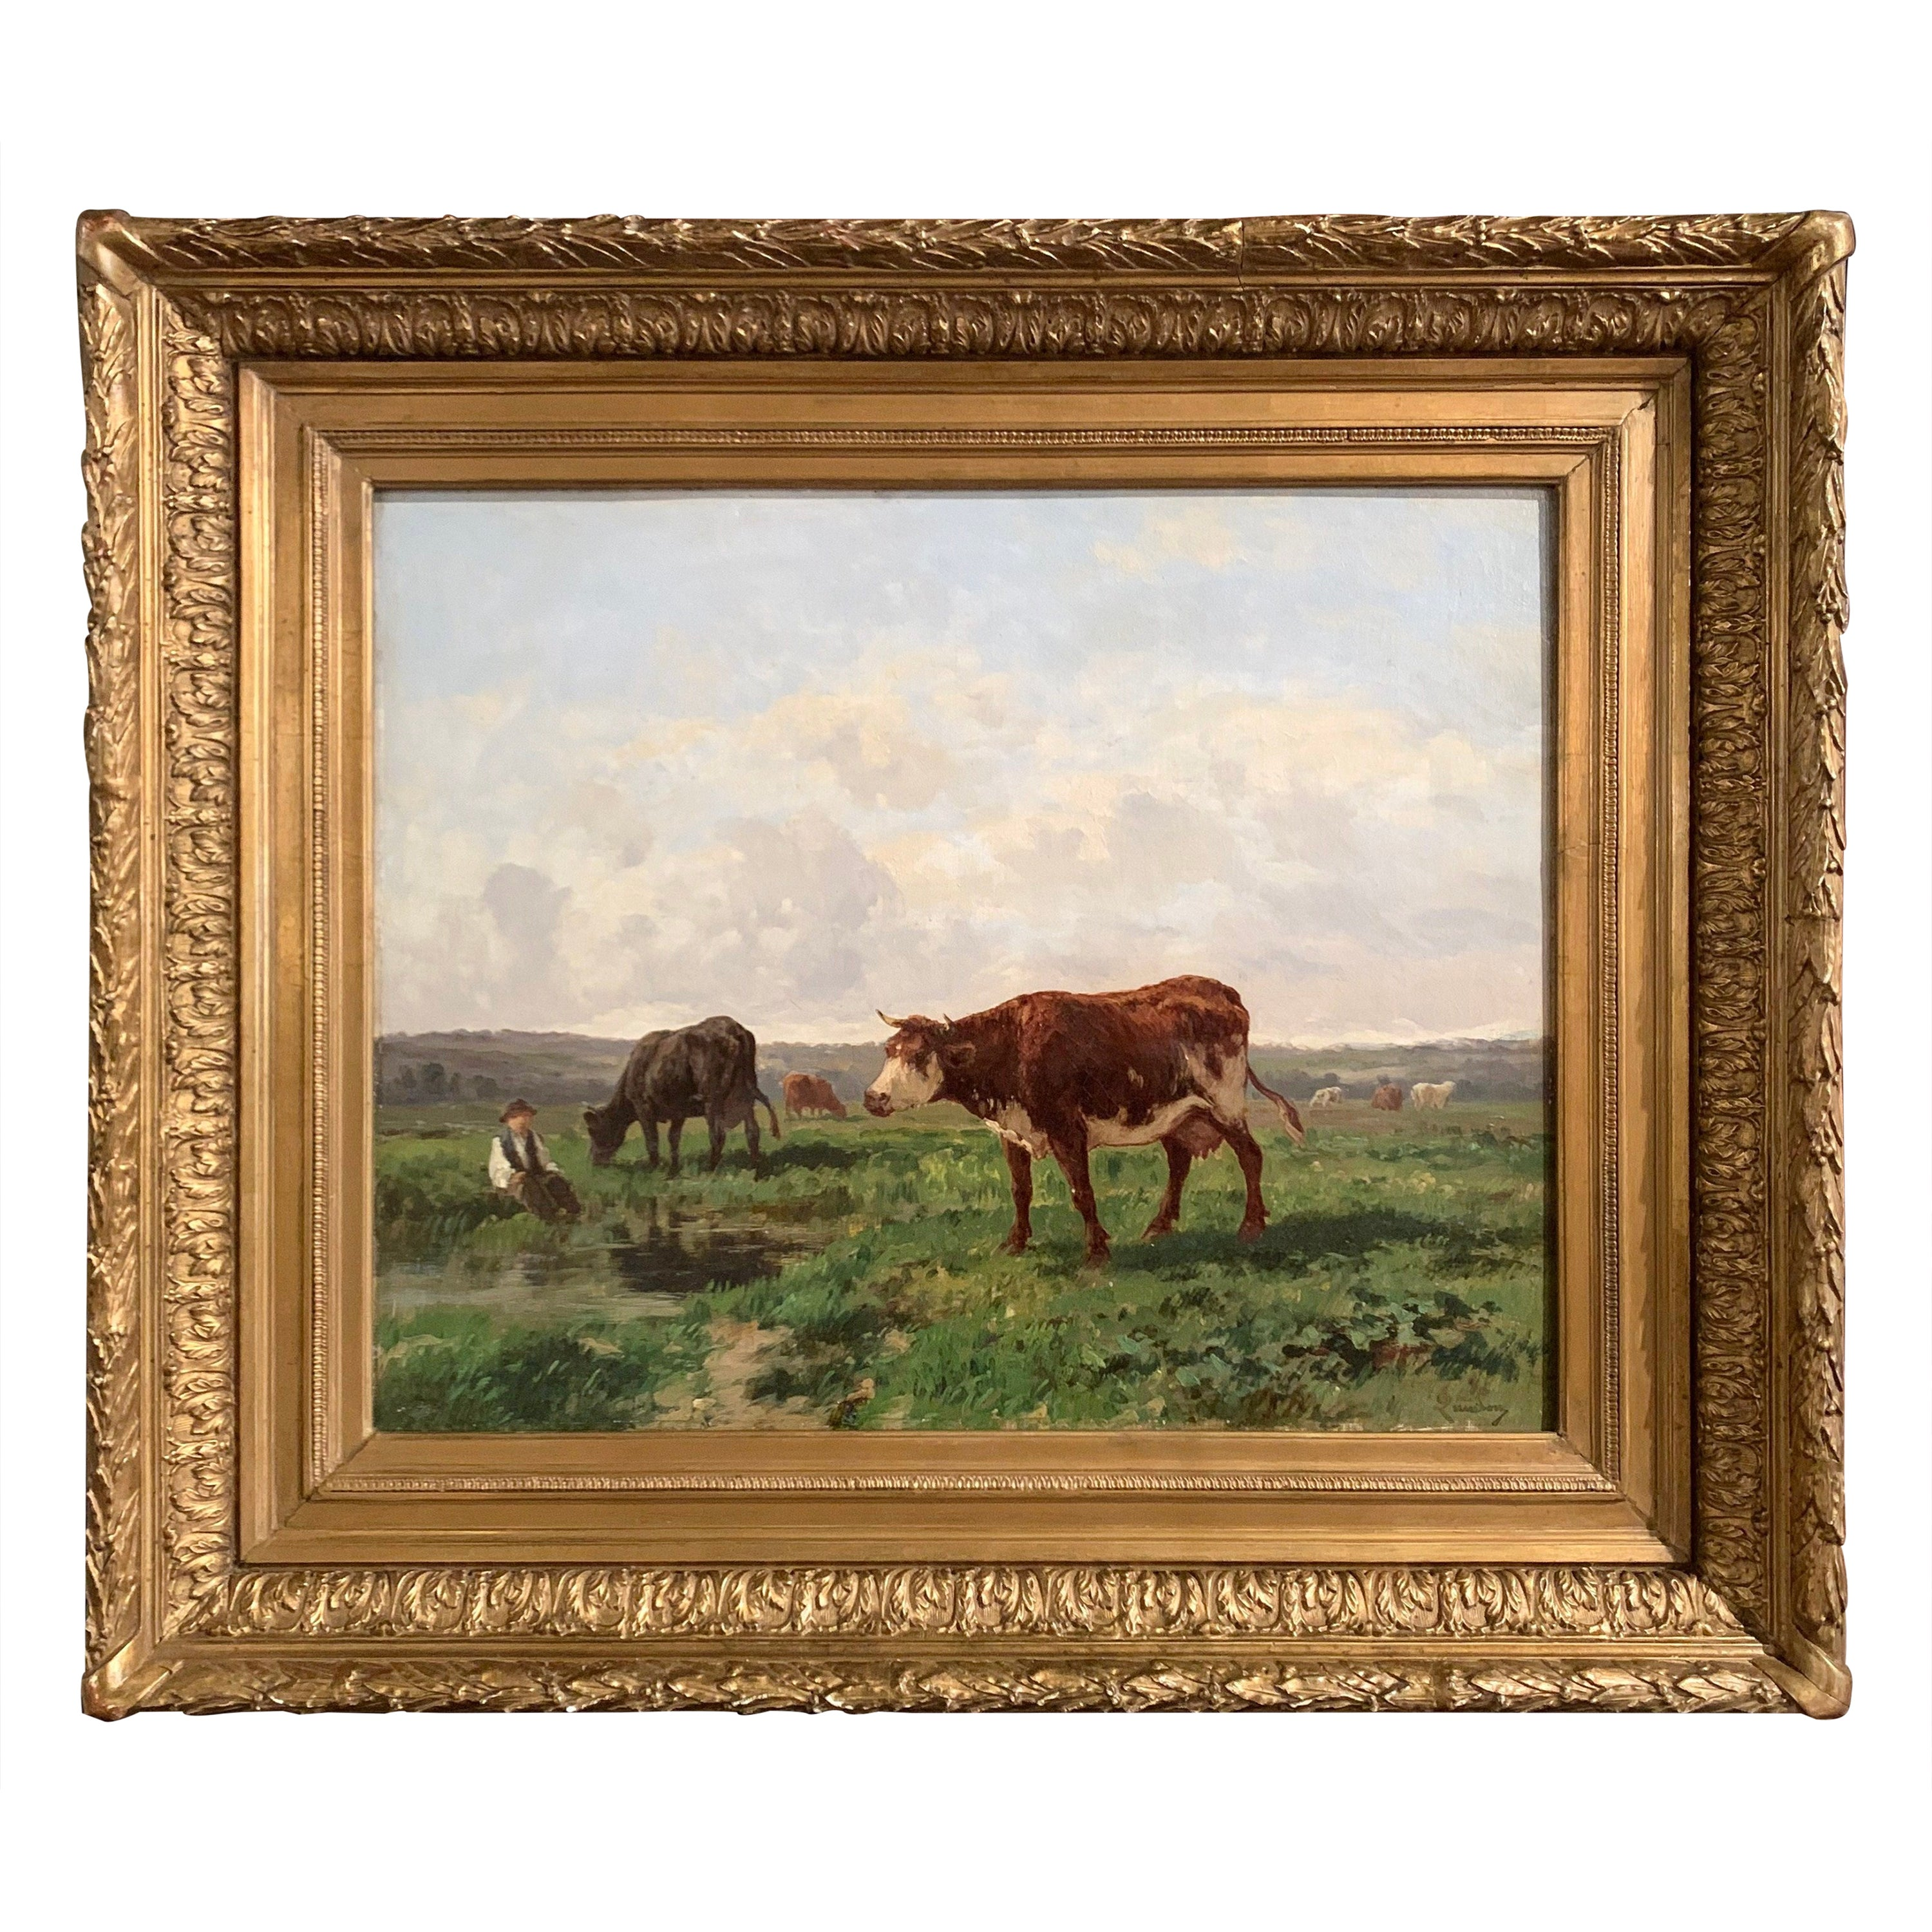 19th Century French Sheep Oil Painting in Carved Gilt Frame Signed C. Quinton